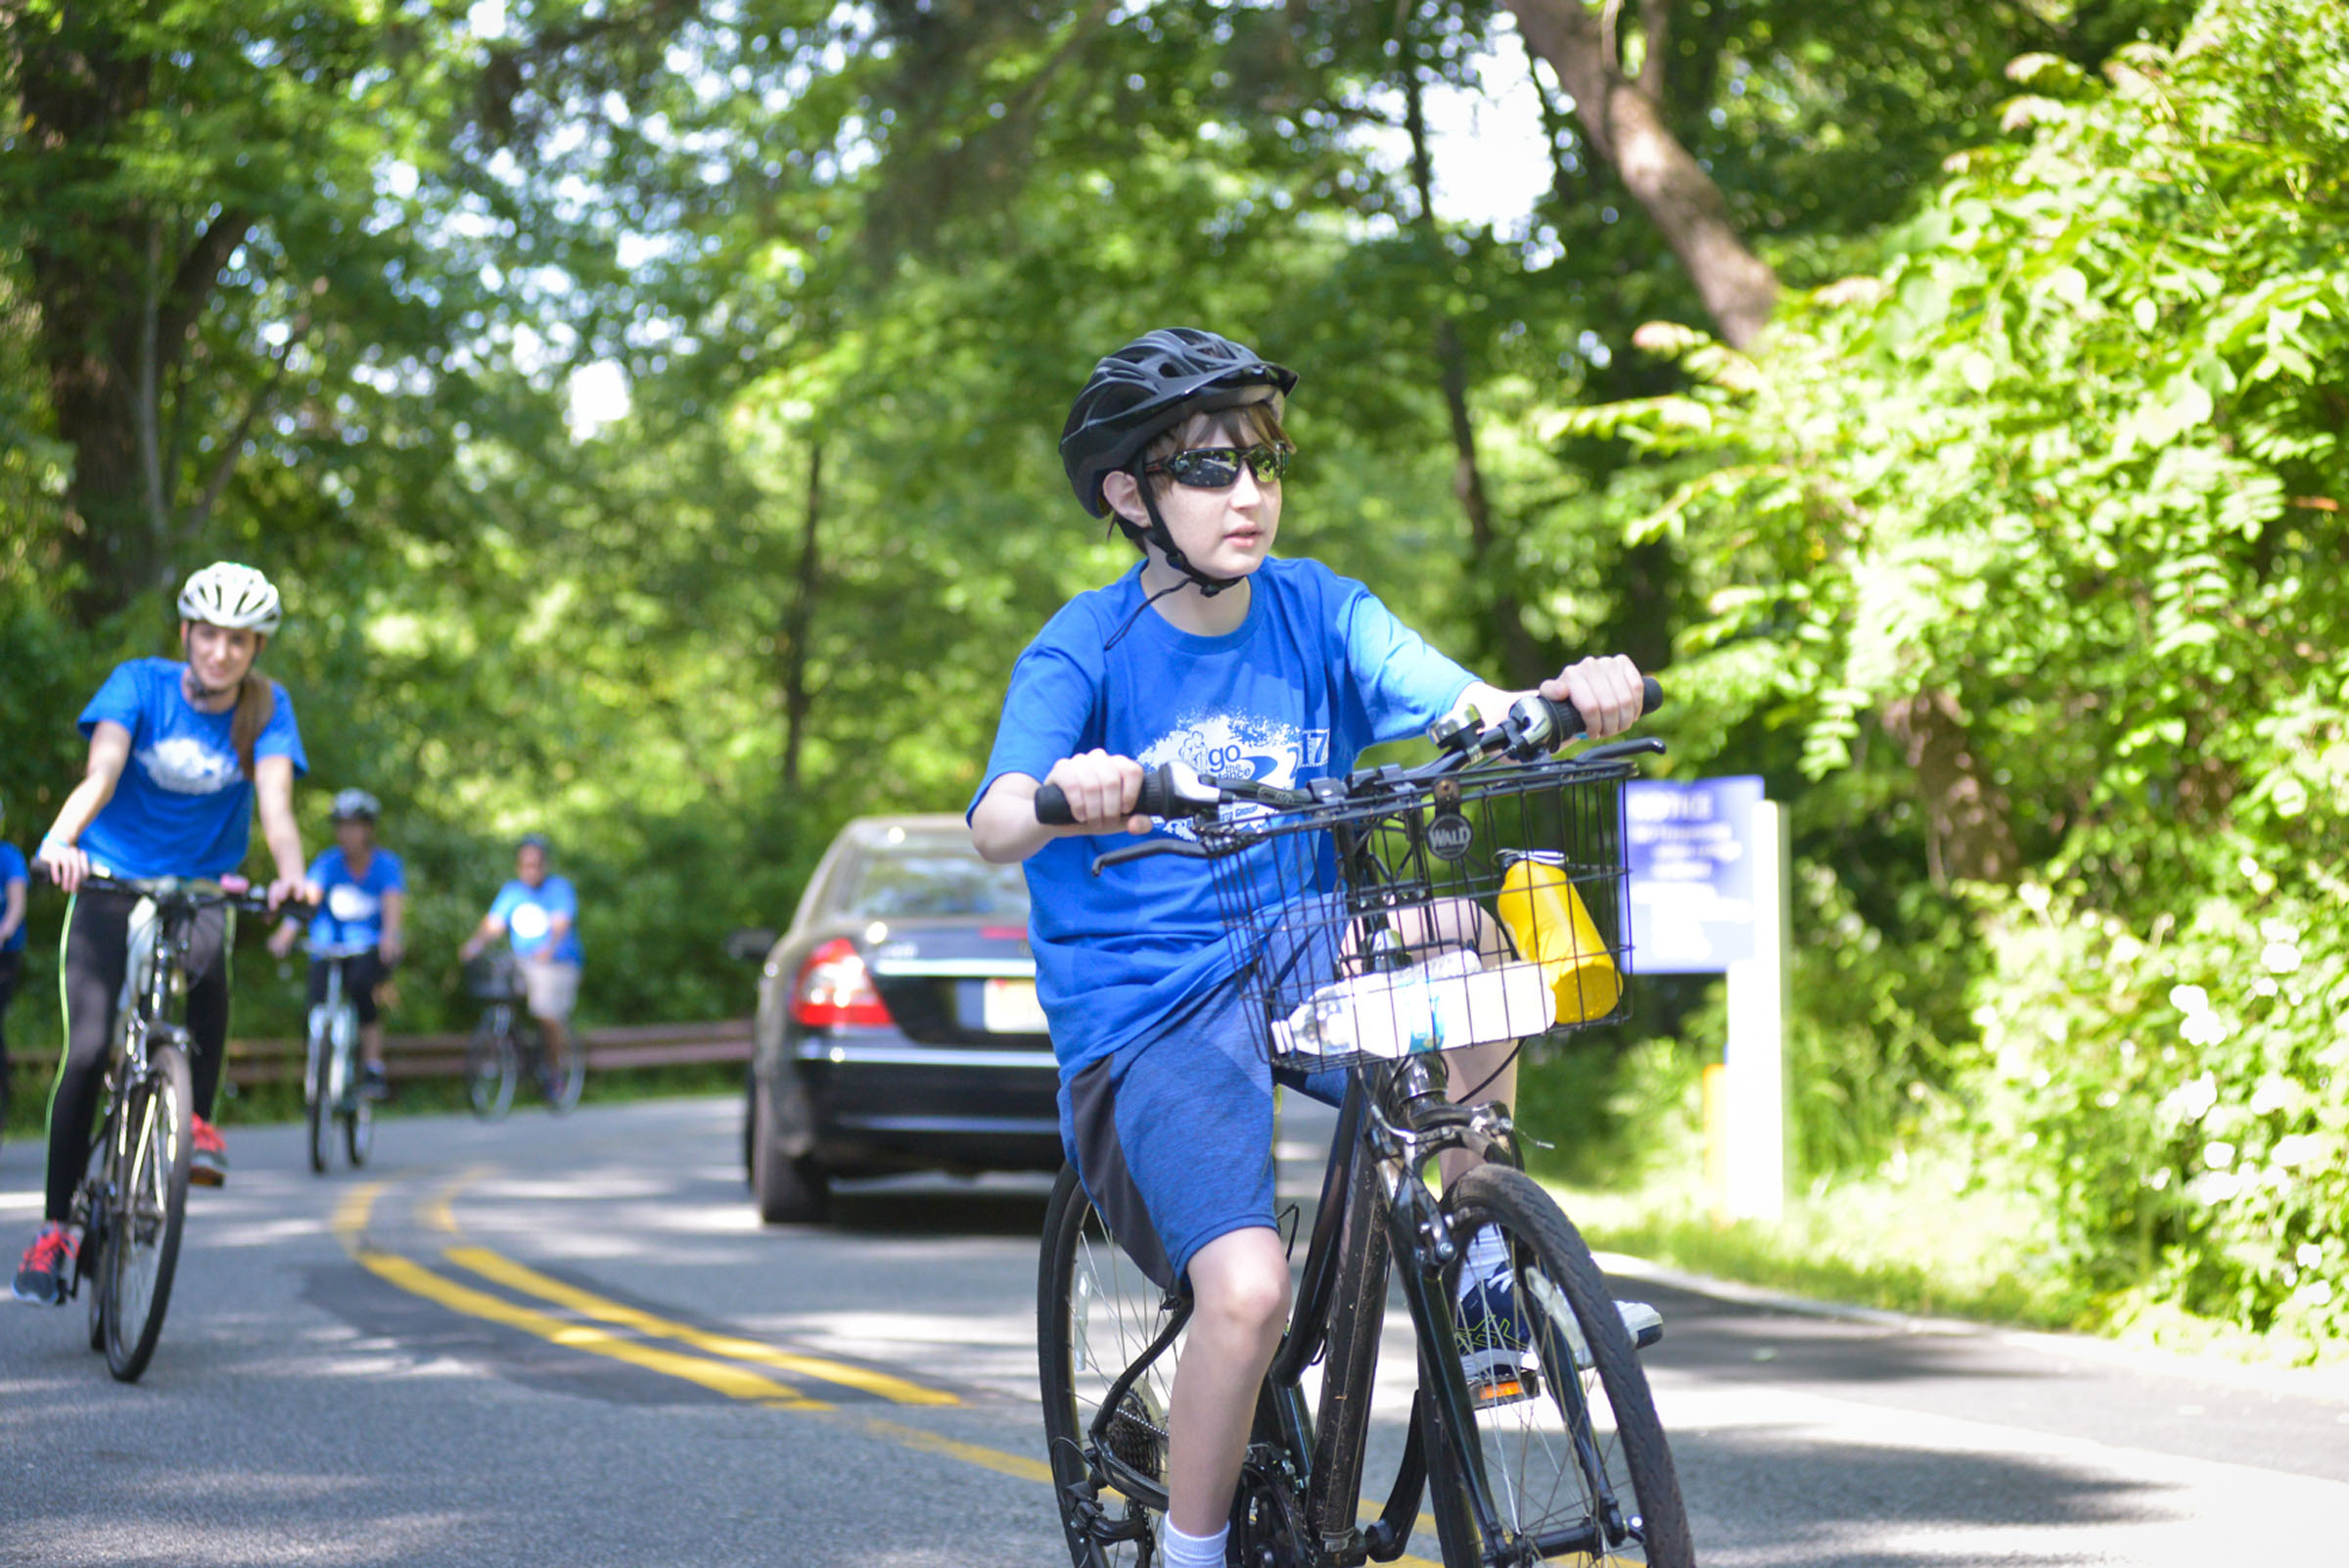 2017-06-04 GTD4A Charity Bike Ride - BCC - Paramus NJ-1927.jpg